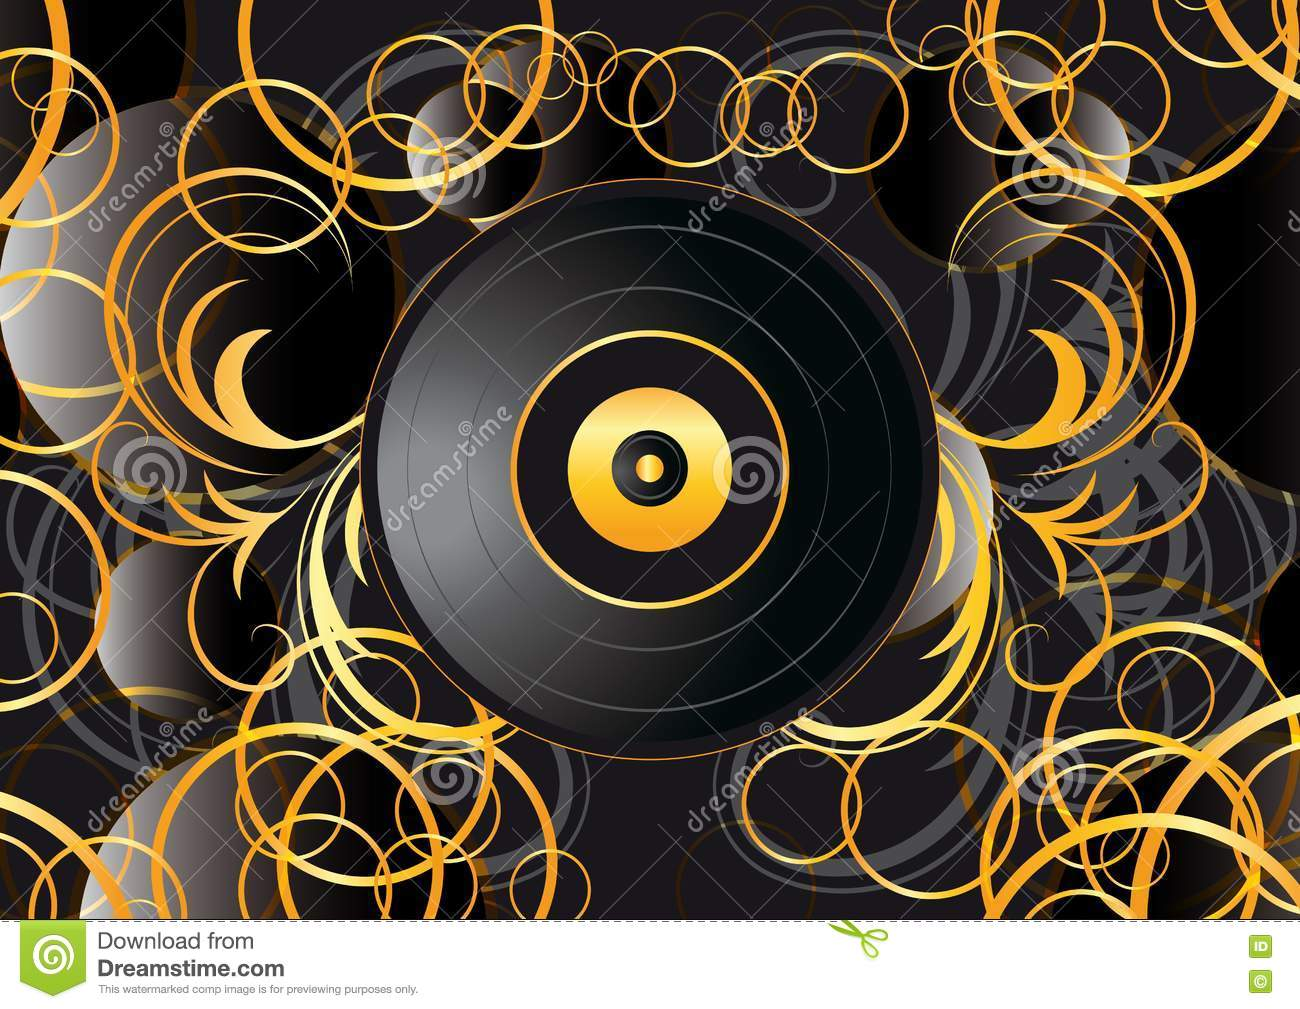 Vinyl Record Abstract Background Royalty Free Stock Photos